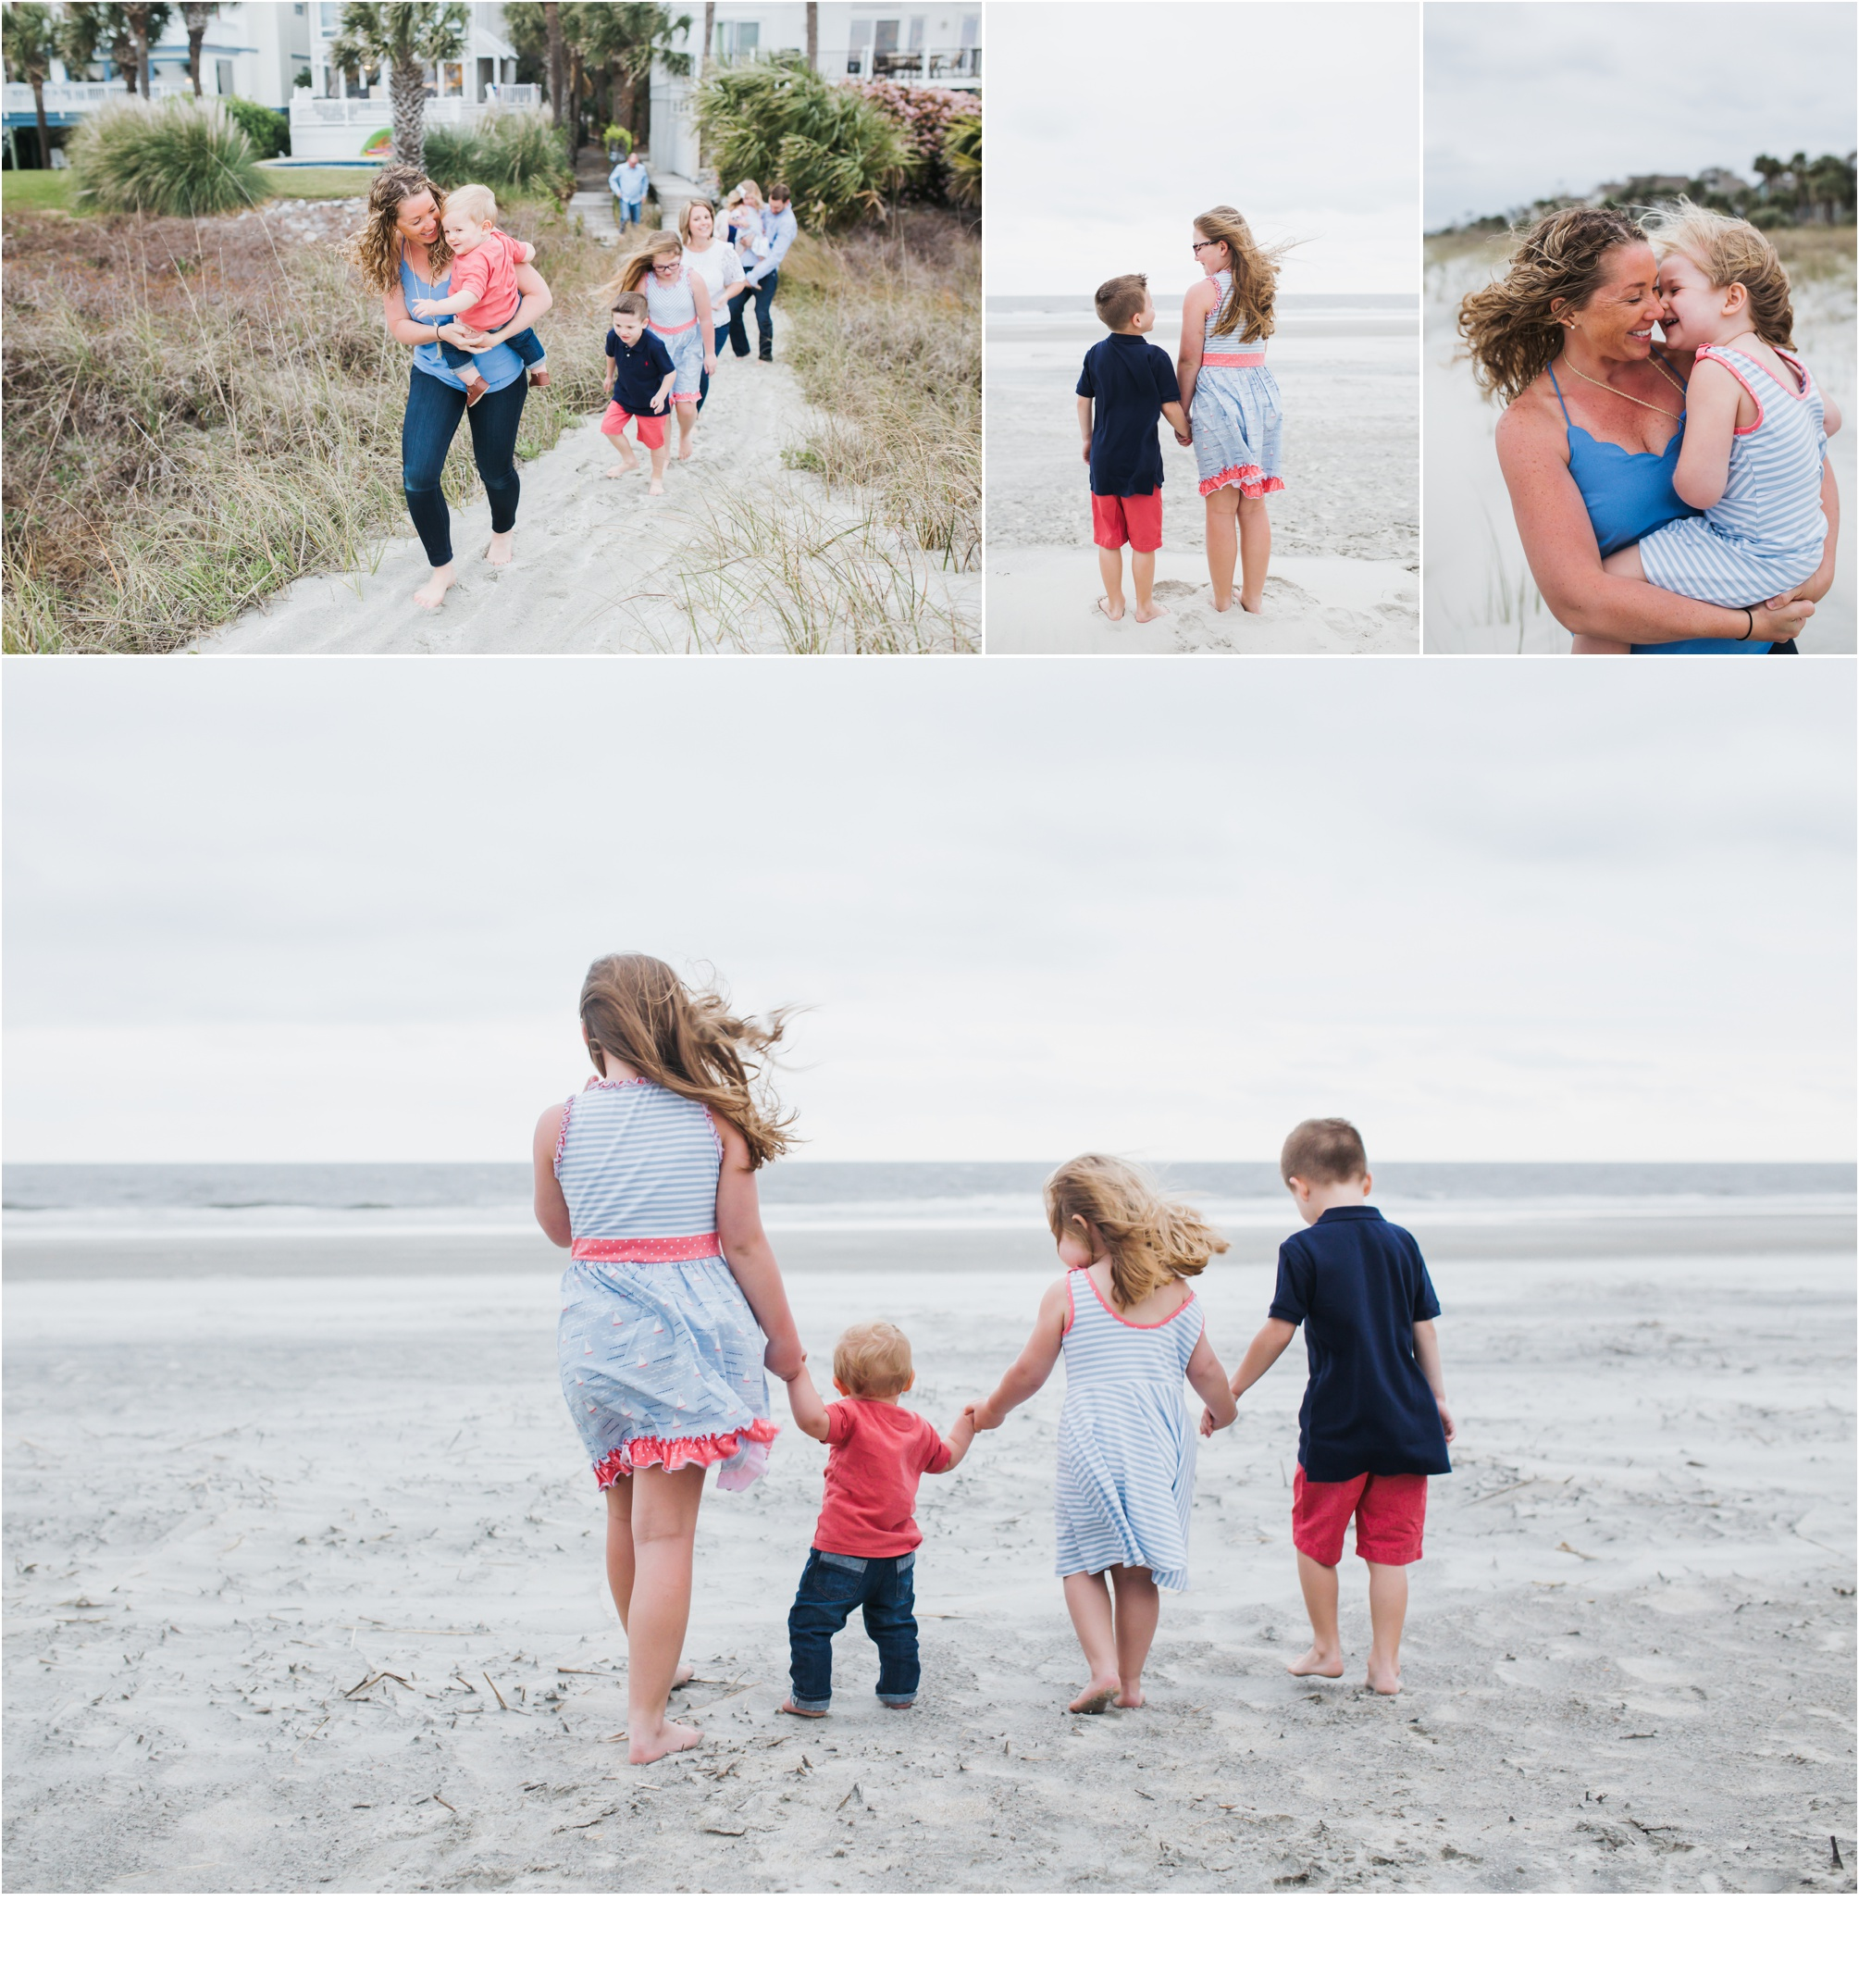 Rainey_Gregg_Photography_St._Simons_Island_Georgia_California_Wedding_Portrait_Photography_1753.jpg